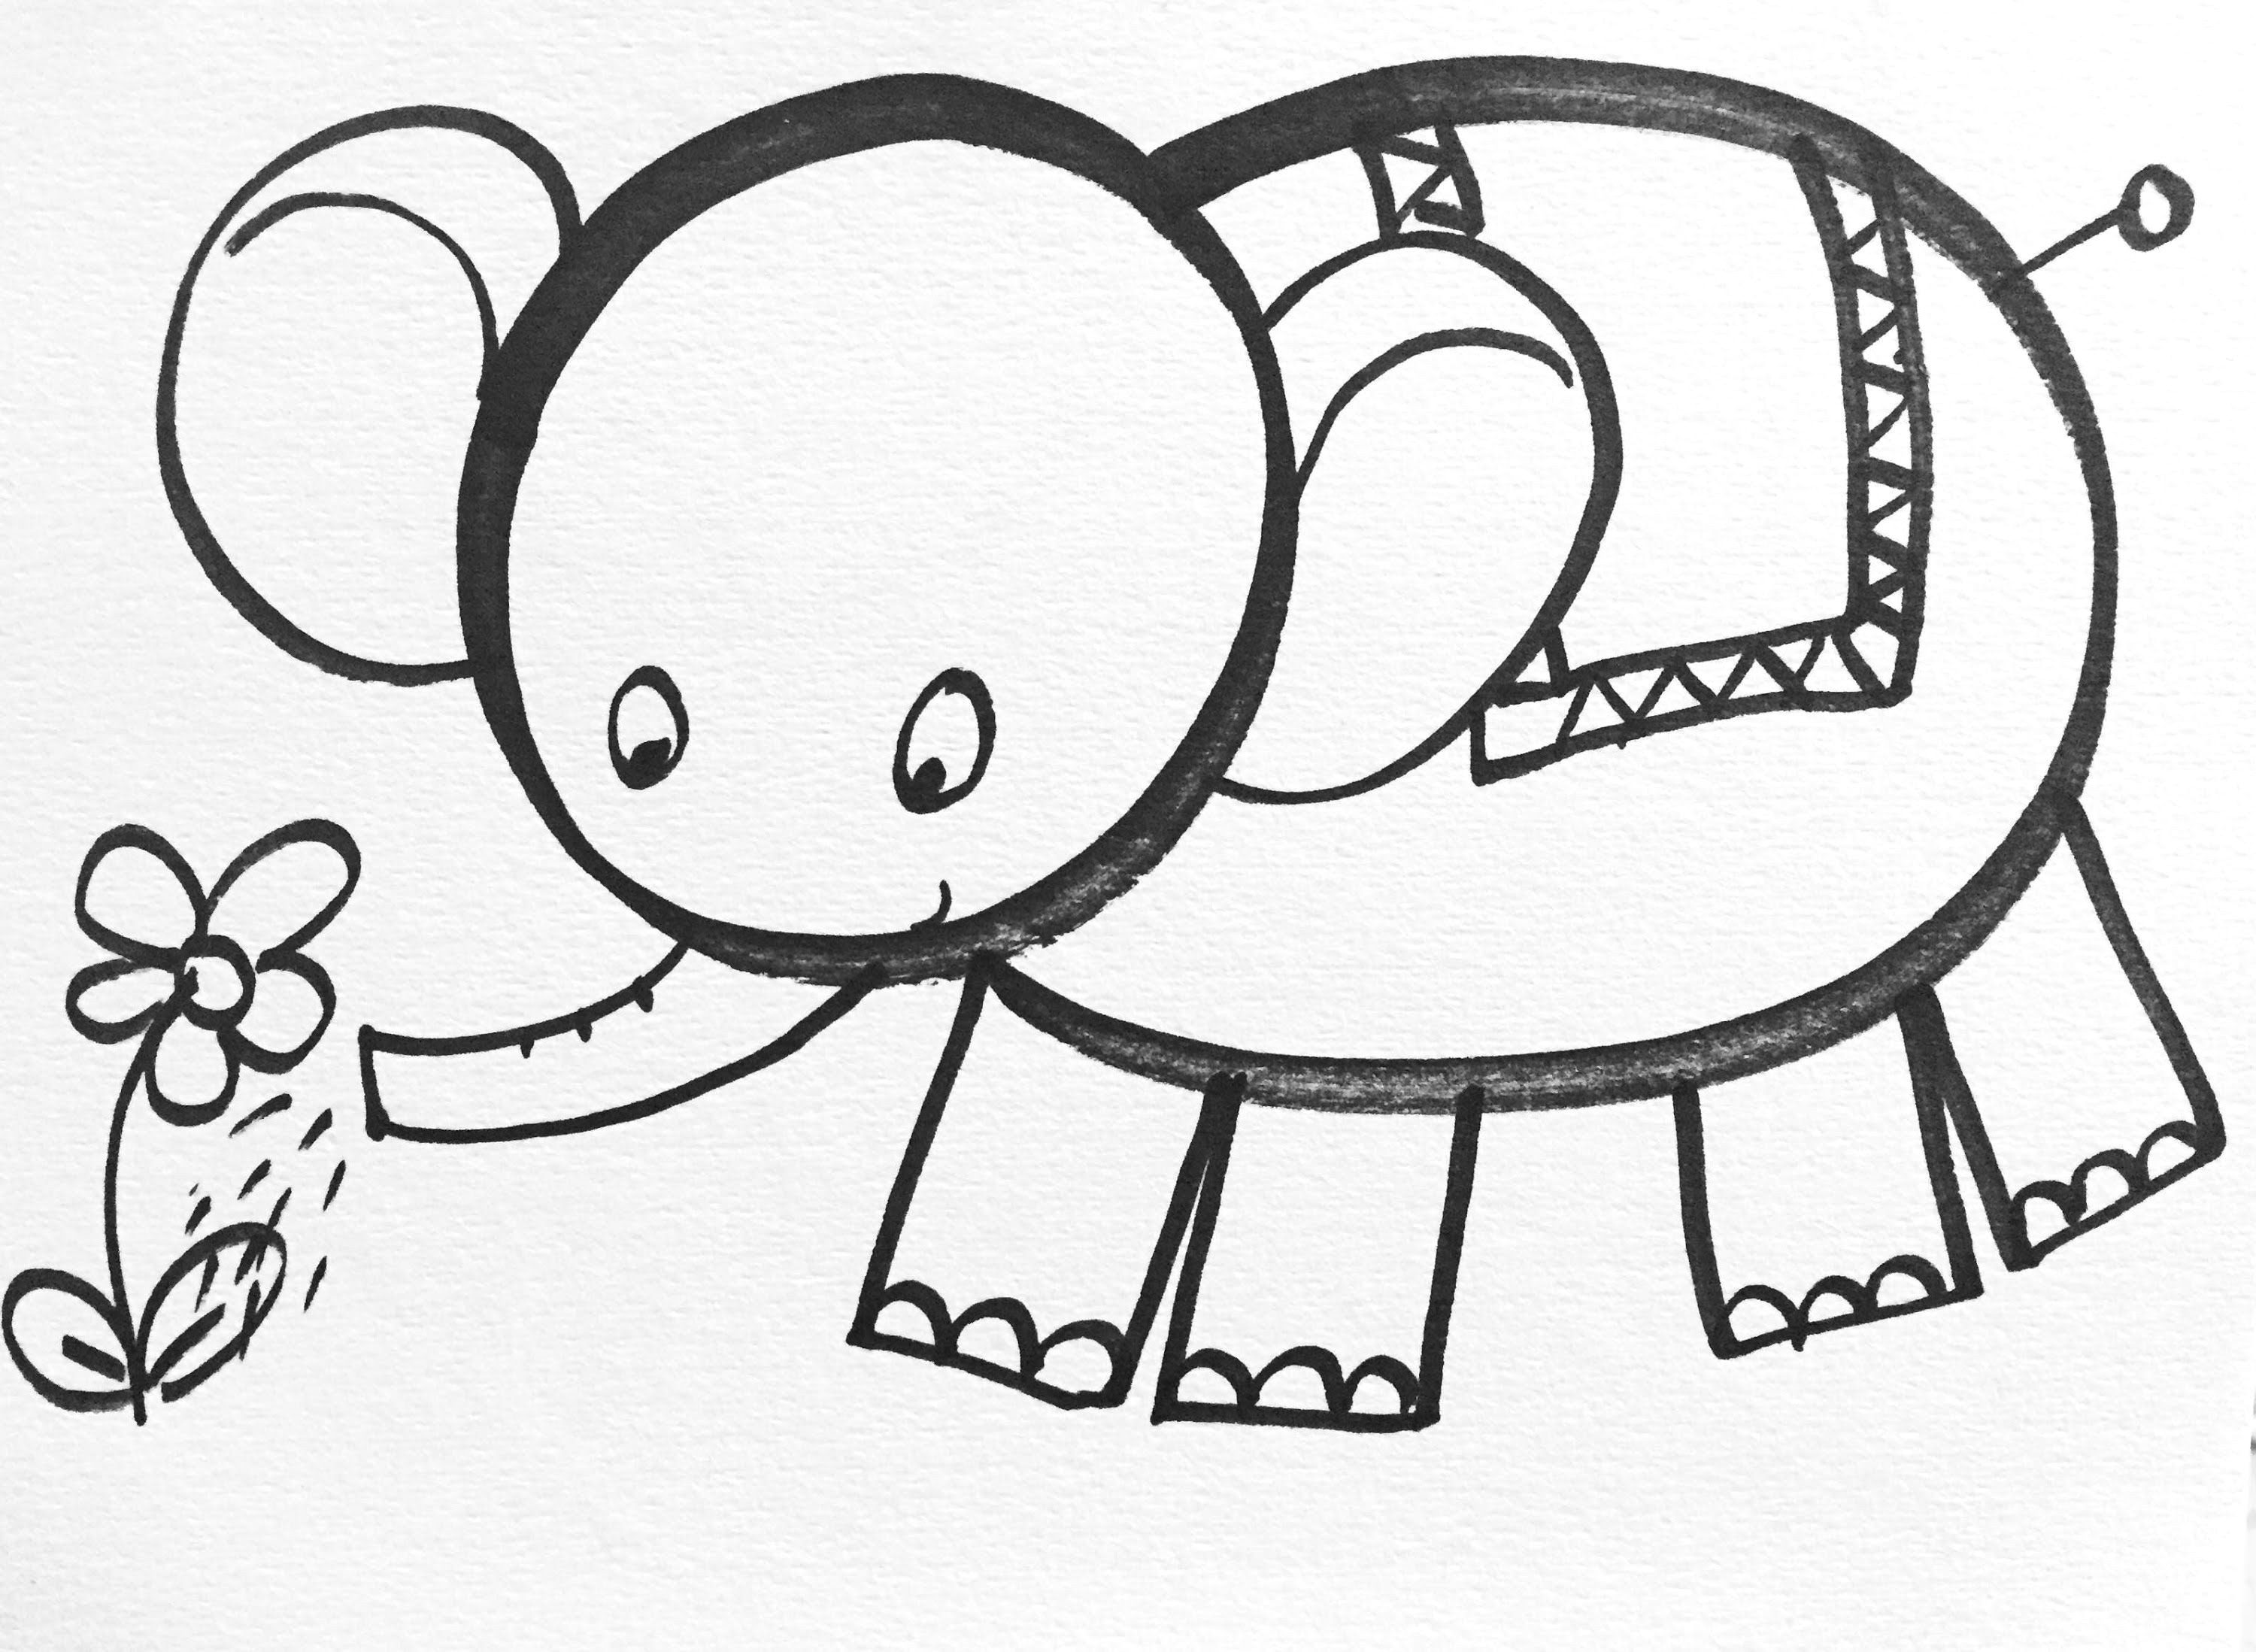 learn how to draw easy in this drawing you can learn to draw the adorable elephant as a cute cartoon character step by step from the popular youtube art